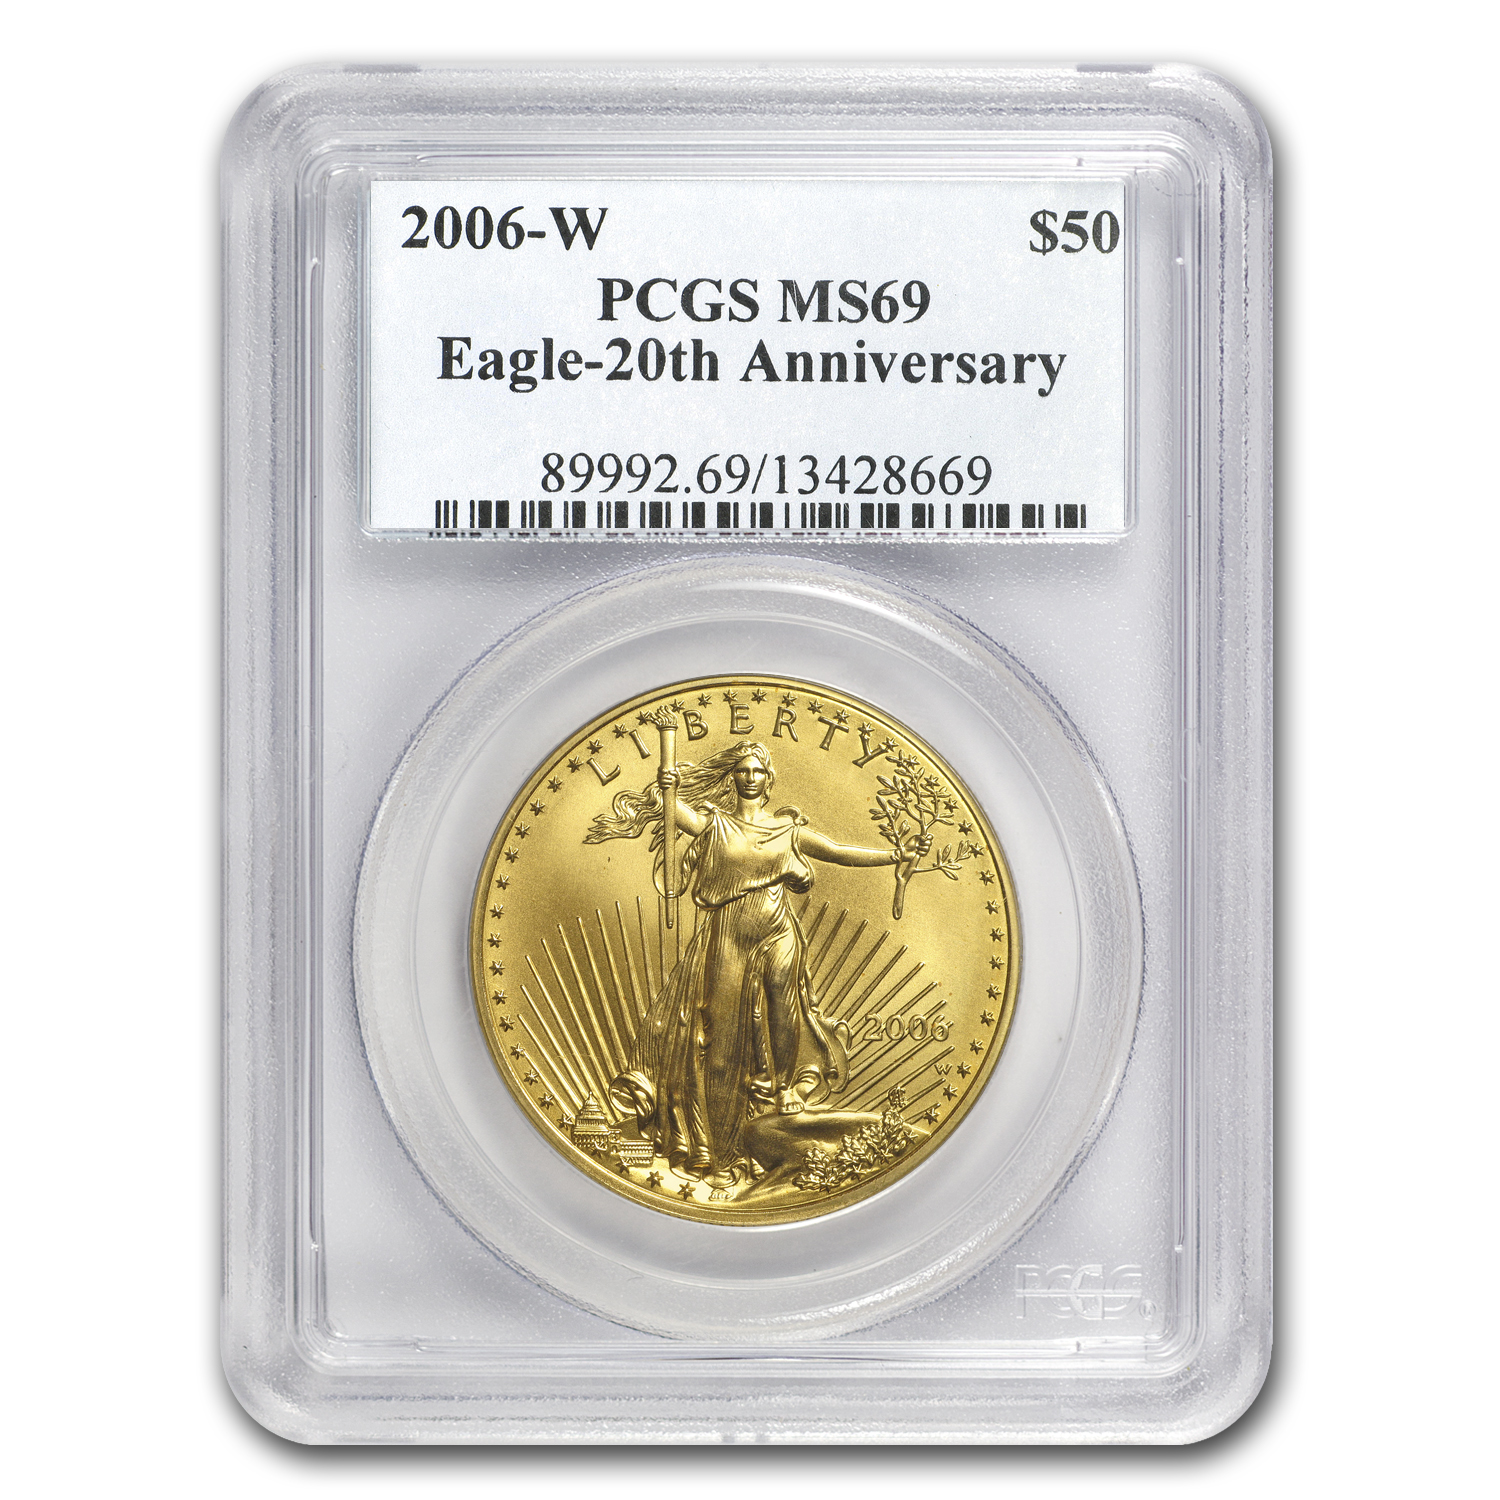 2006-W 1 oz Burnished Gold American Eagle MS-69 PCGS (20th Ann)